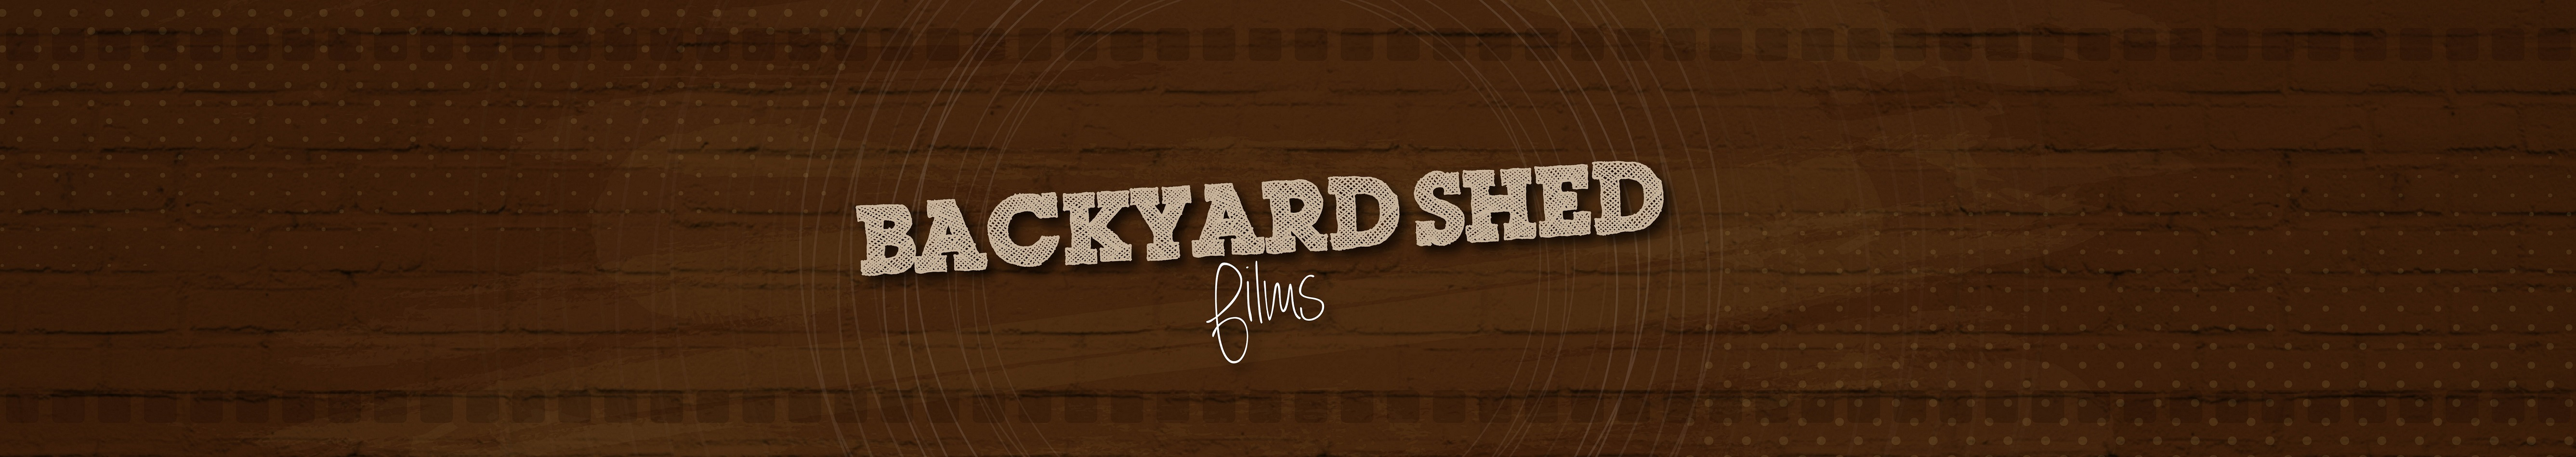 Clients | Backyard Shed Films